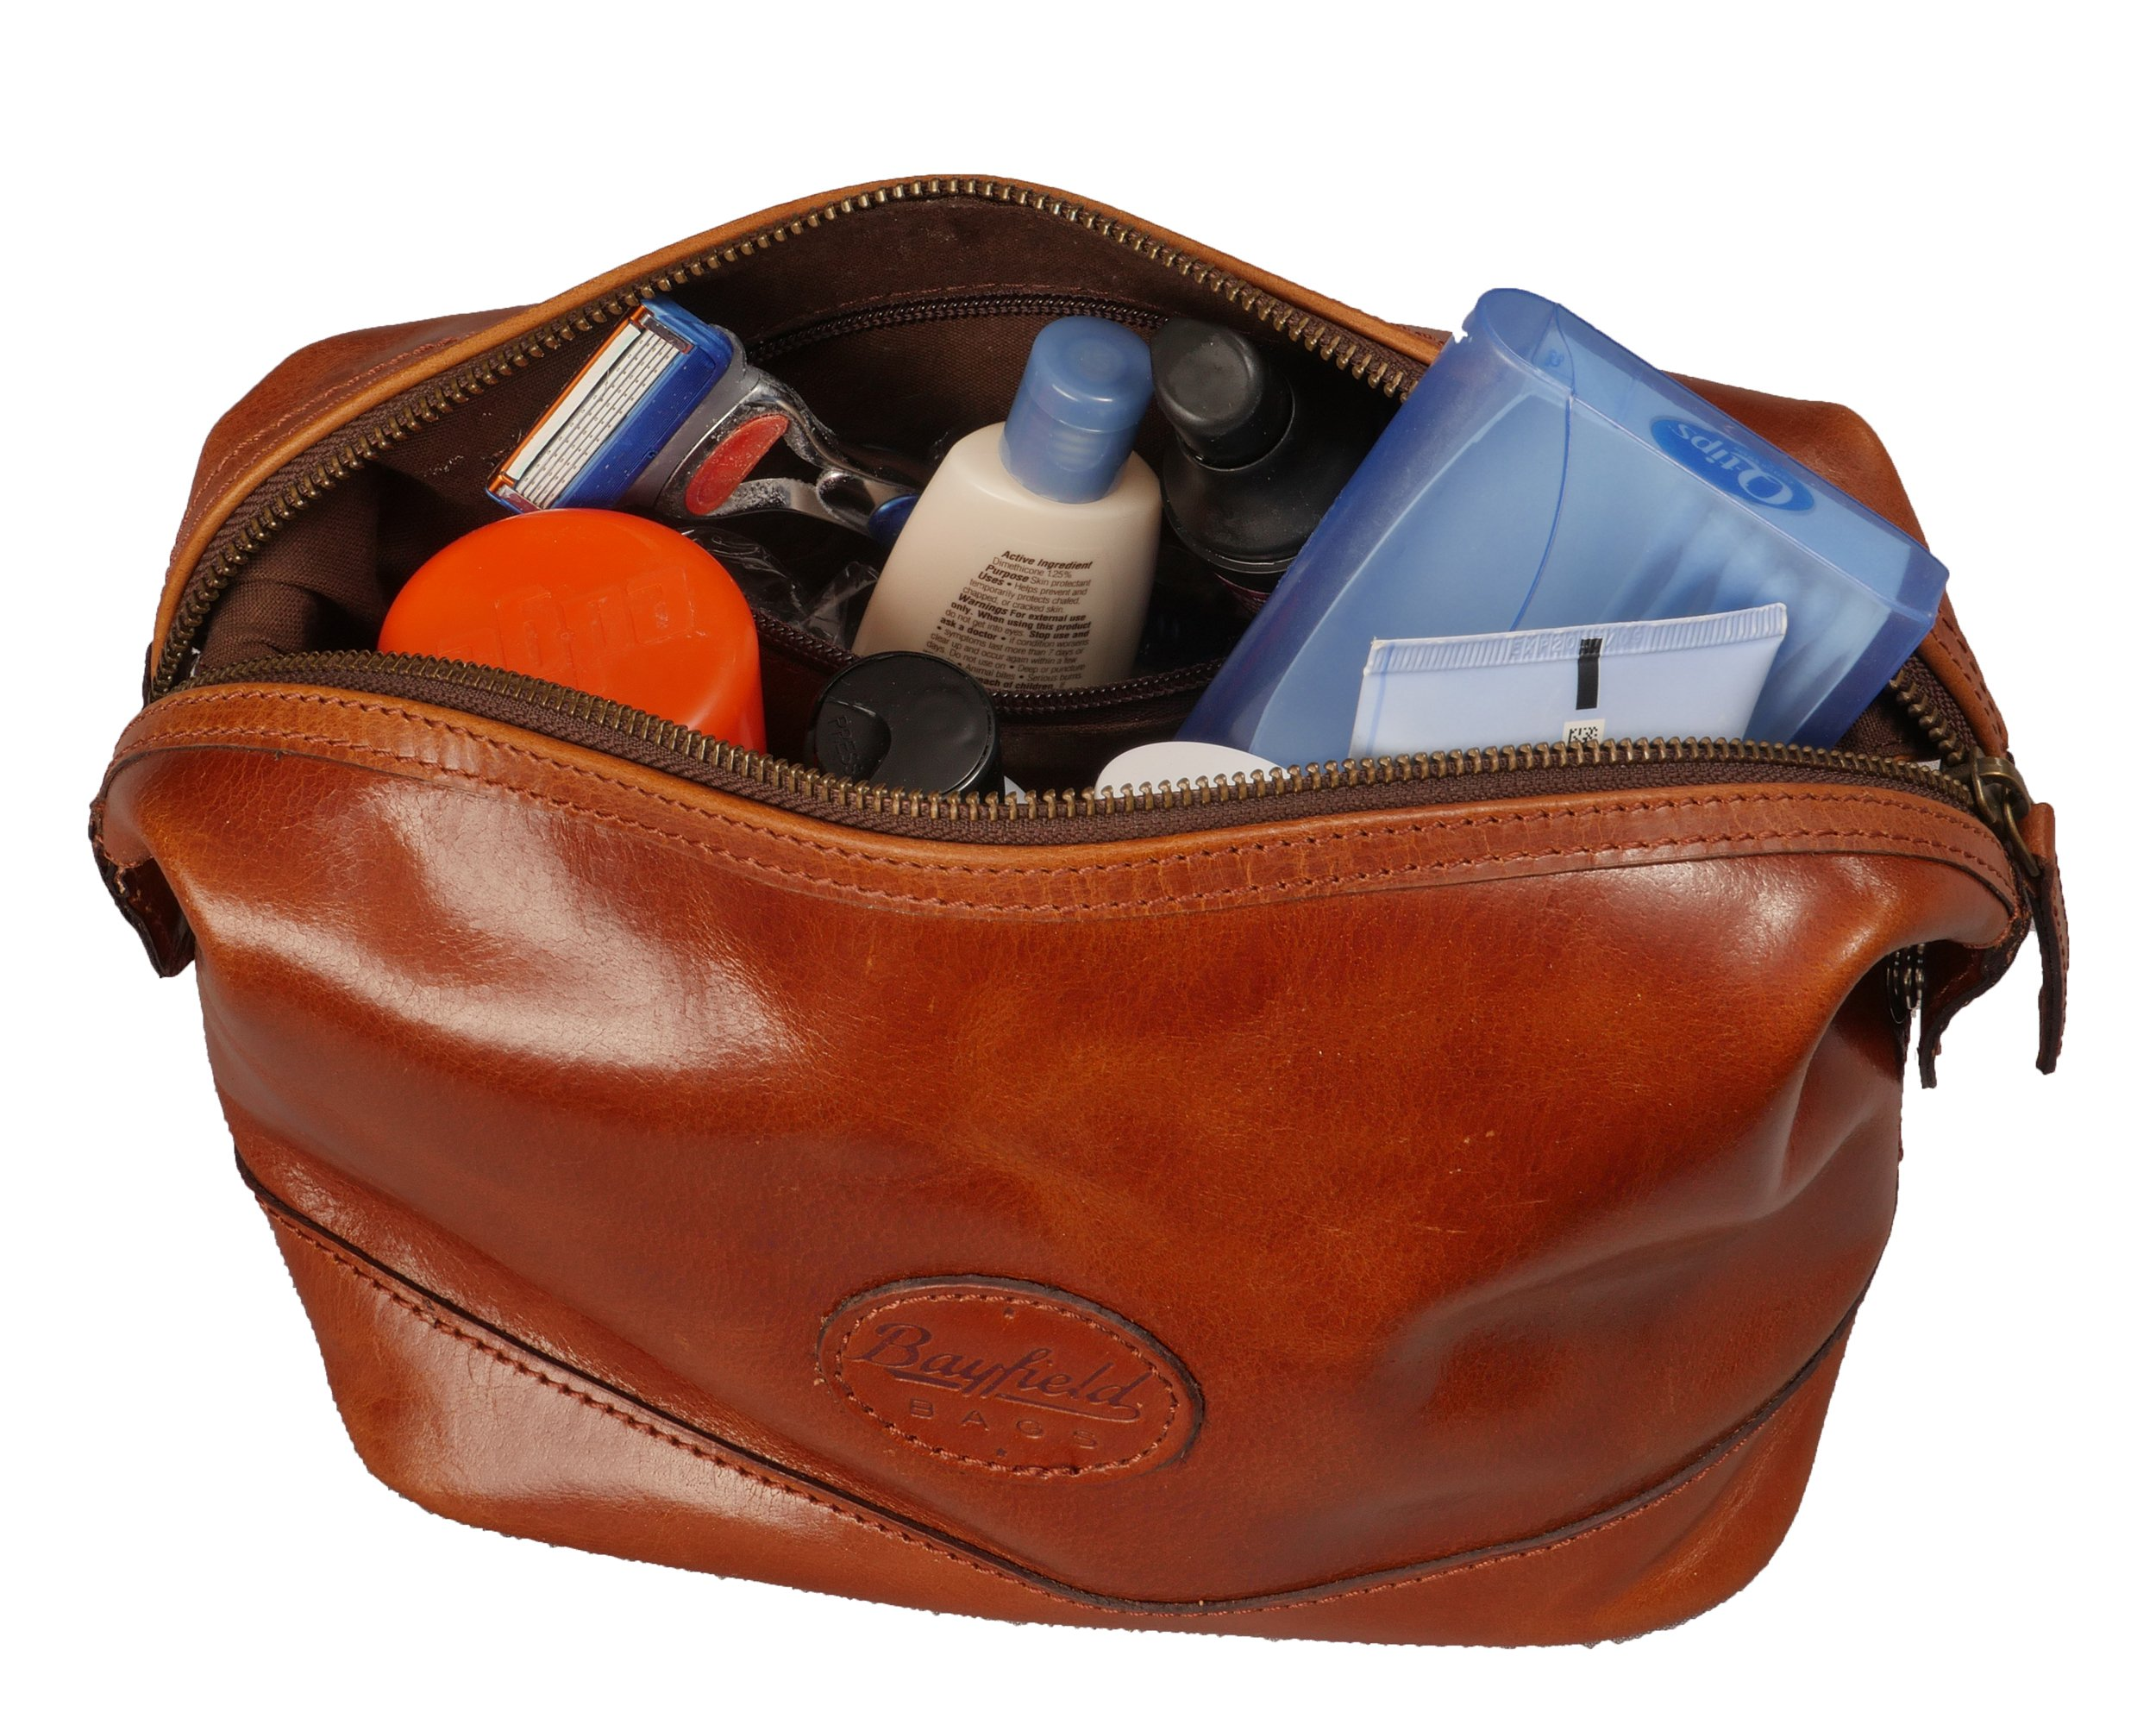 Leather Toiletry Bag for Men – Zippered Dopp Kit Organizer – Brown Travel Shaving Kit Case (9x5x7) by Bayfield Bags by Bayfield Bags (Image #6)